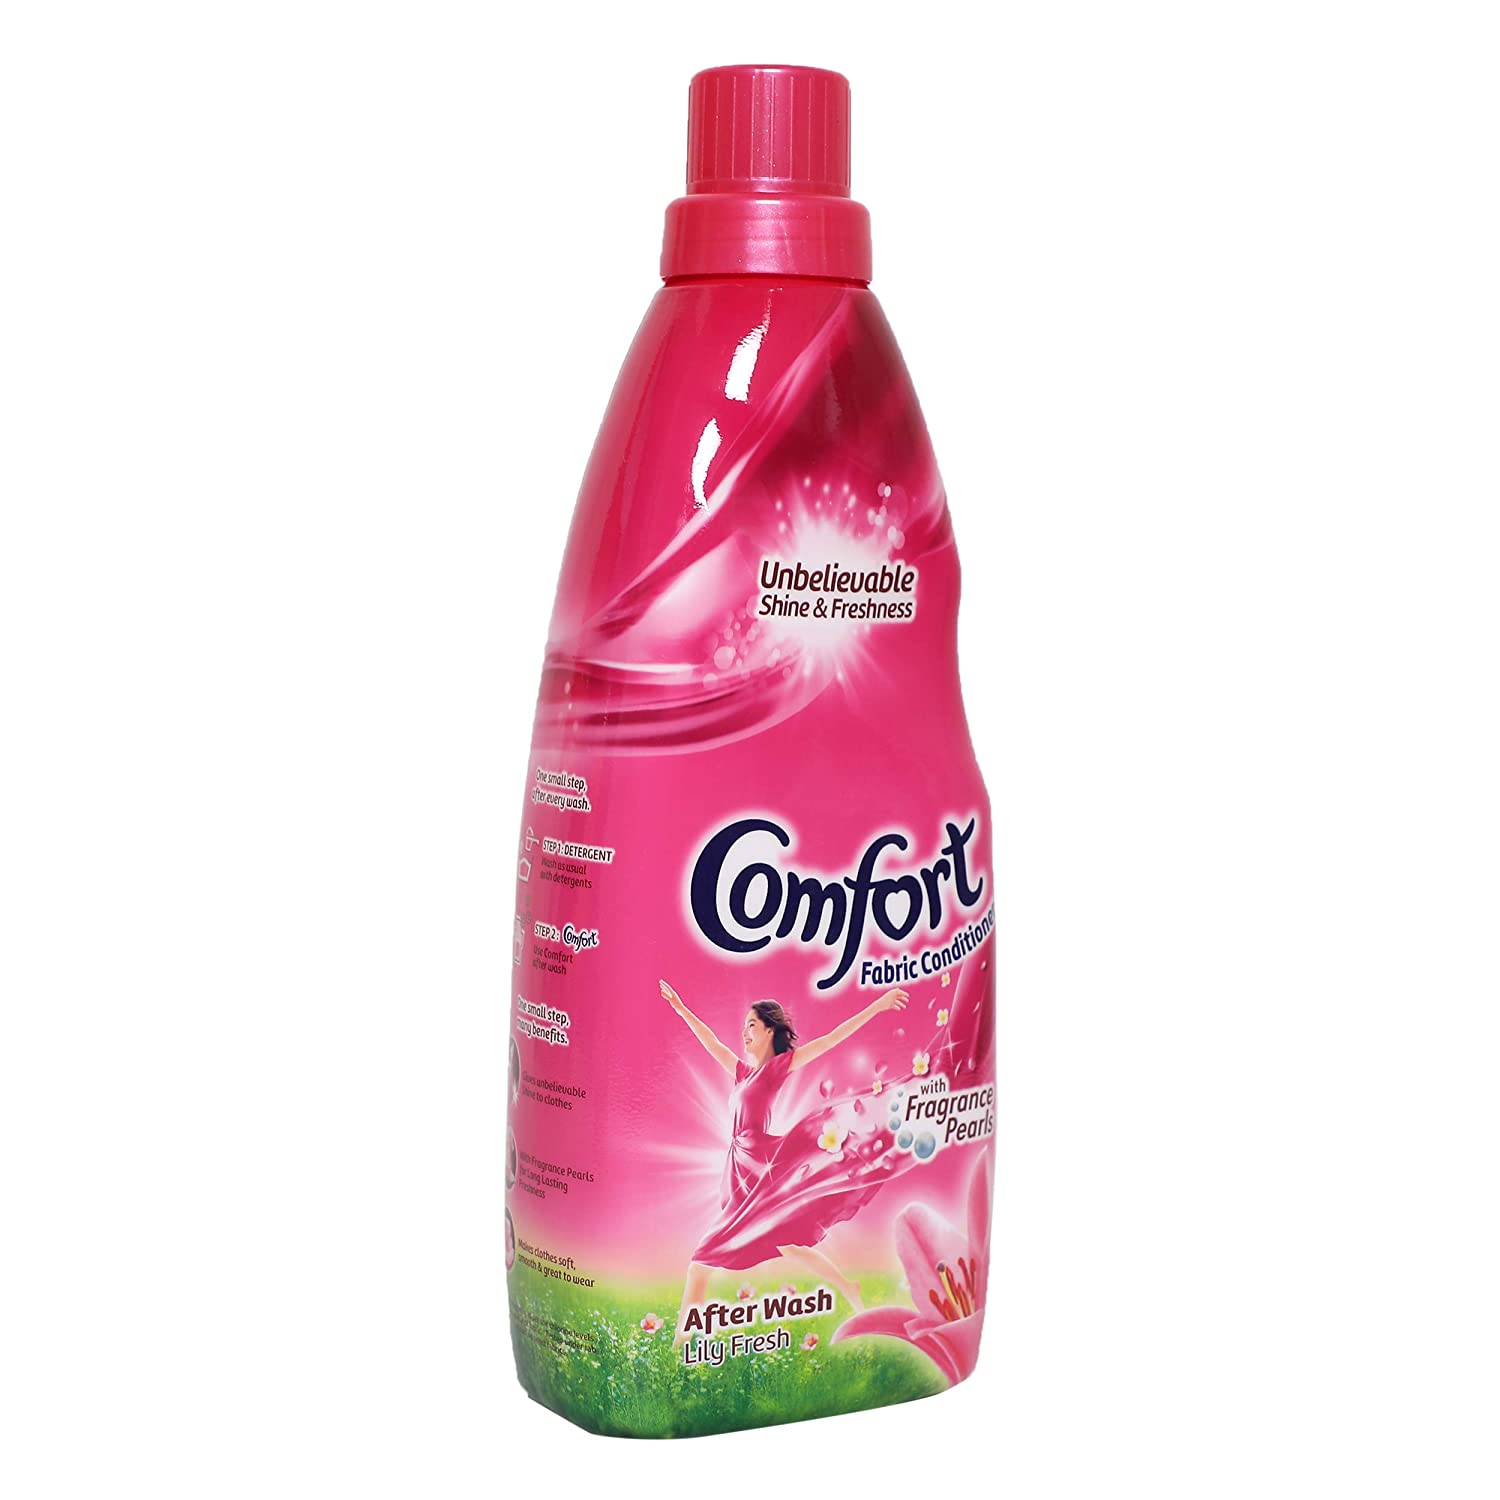 Comfort After Wash Morning Fresh Fabric Conditioner.